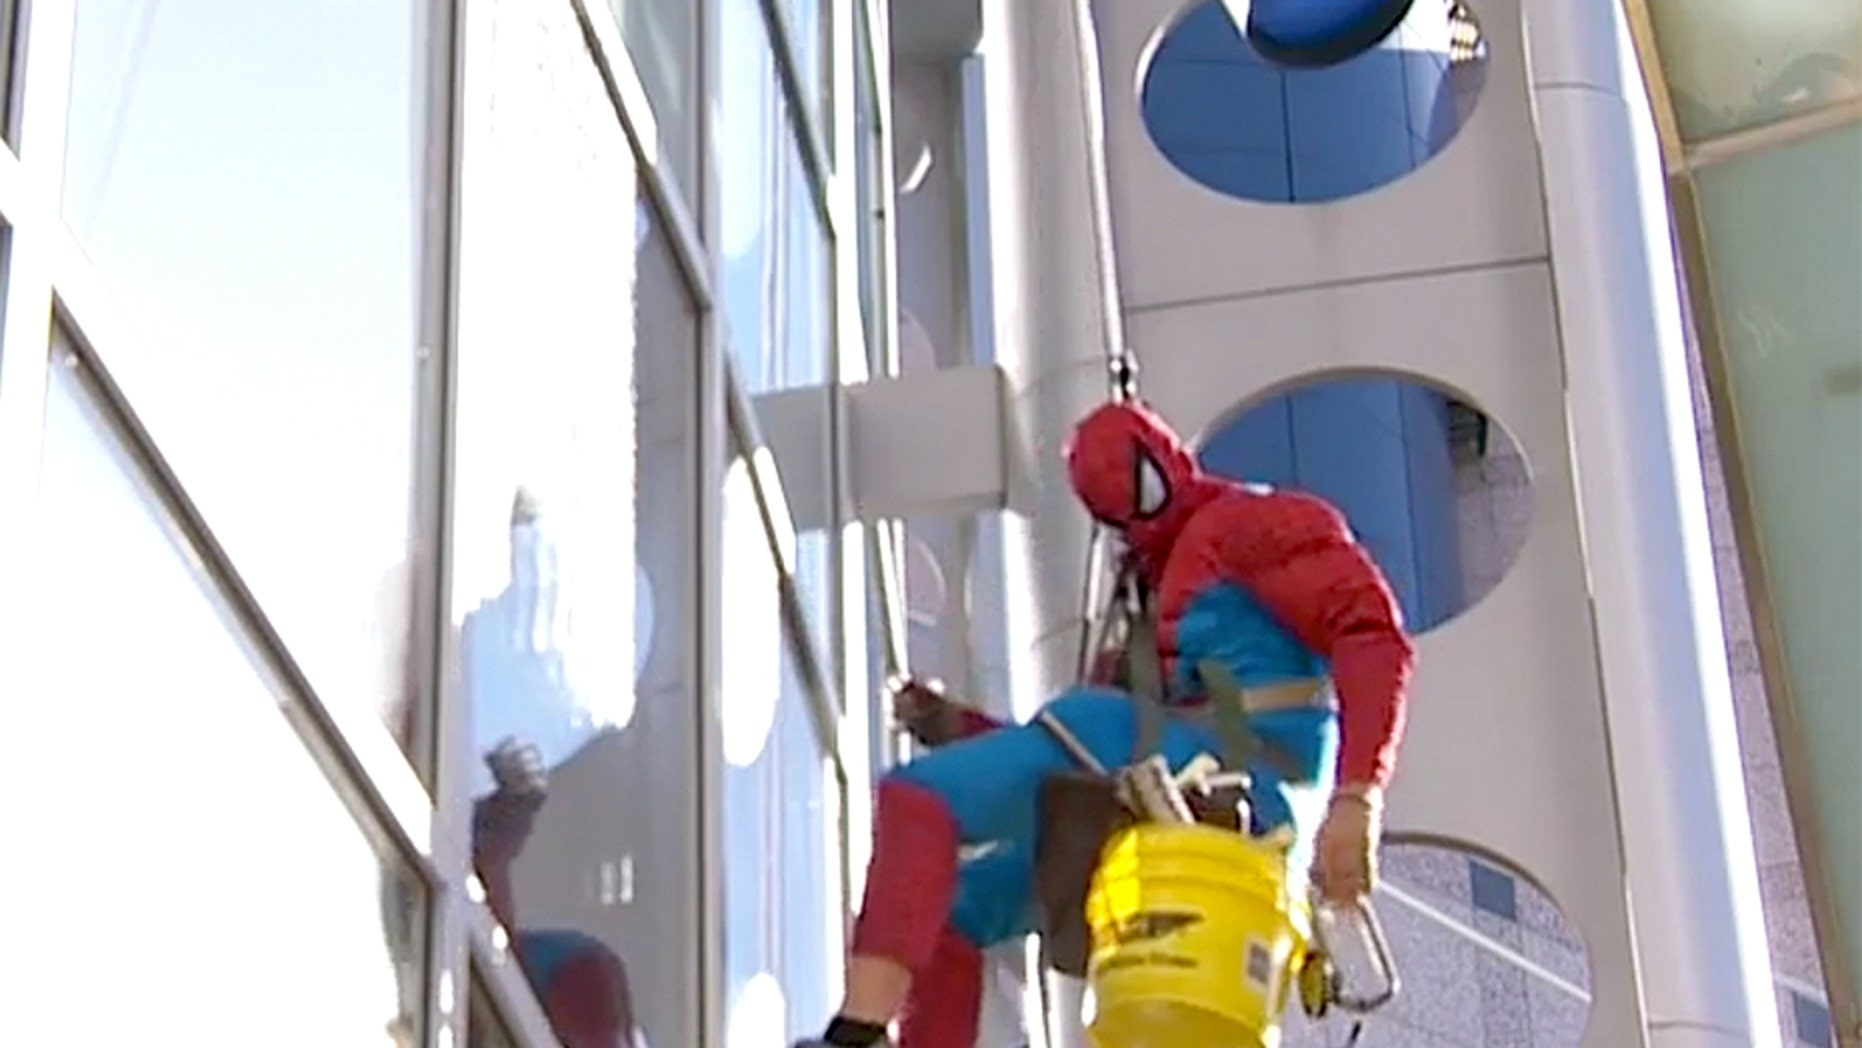 Jarratt A. Turner, who would dress up as Spider-Man and wash windows at local children's hospitals, was sentenced to 105 years in prison for child pornography.